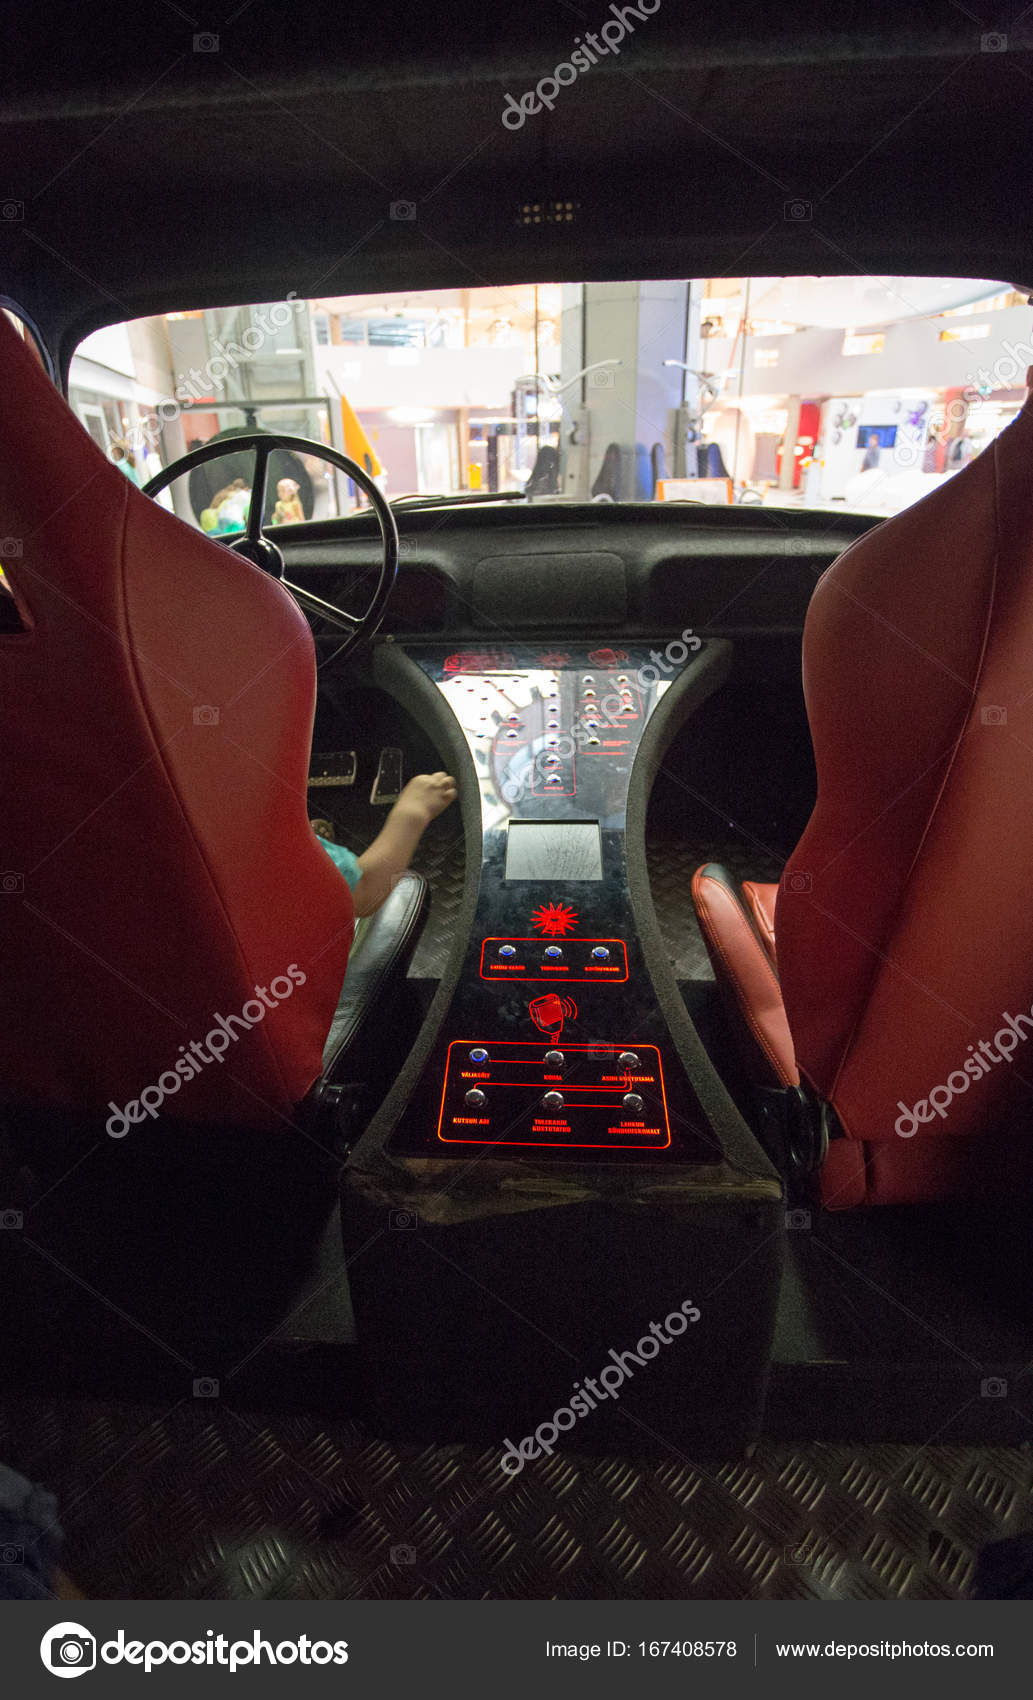 Firetruck Interior With Red Buttons Stock Photo C Trancedrumer 167408578